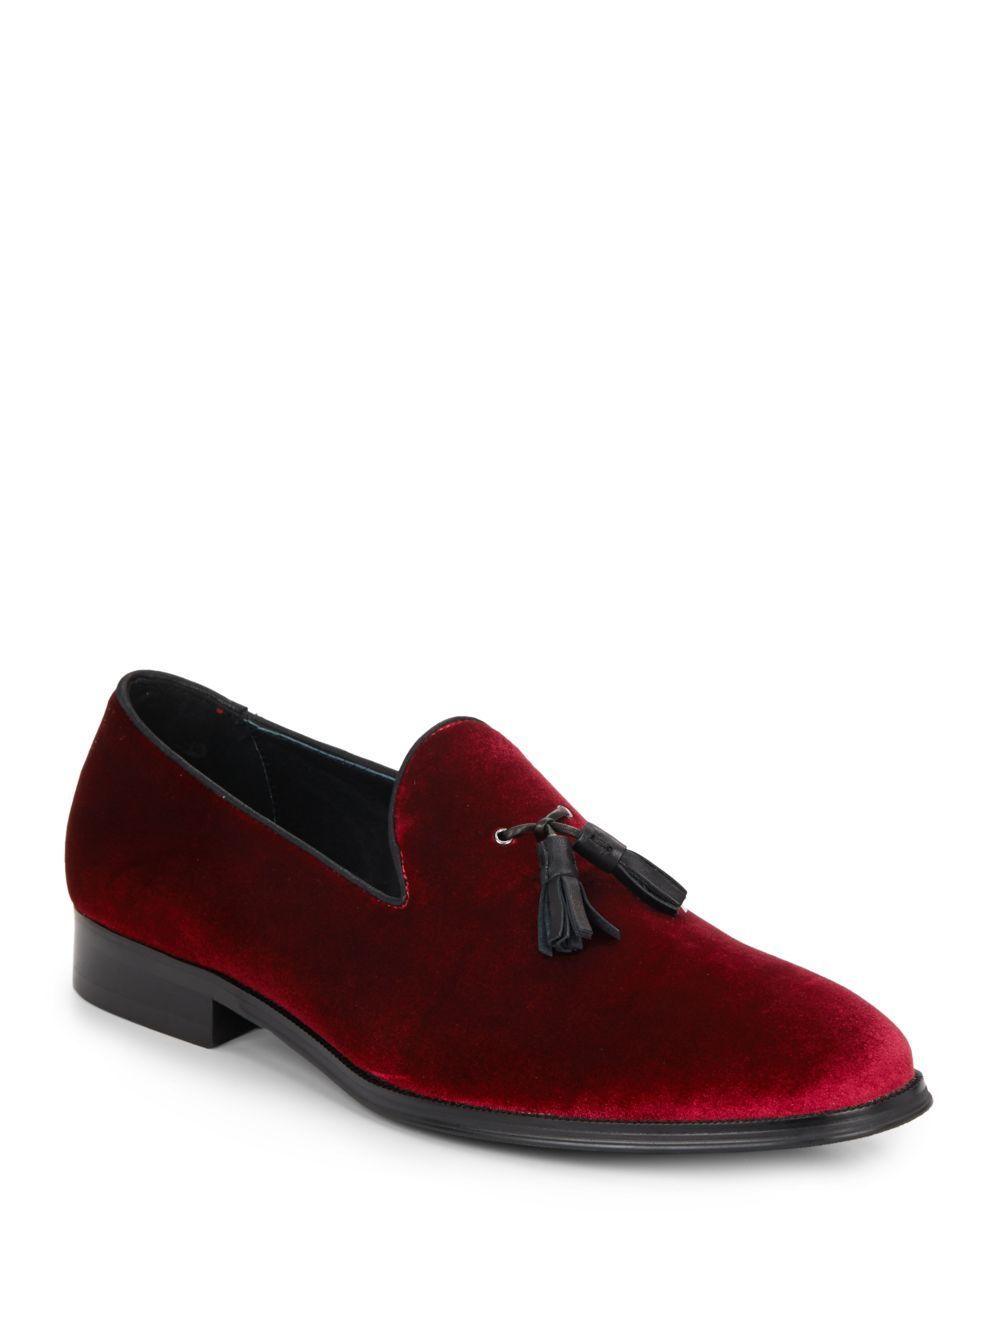 Steve Madden - Red Bway Velvet Loafers for Men - Lyst